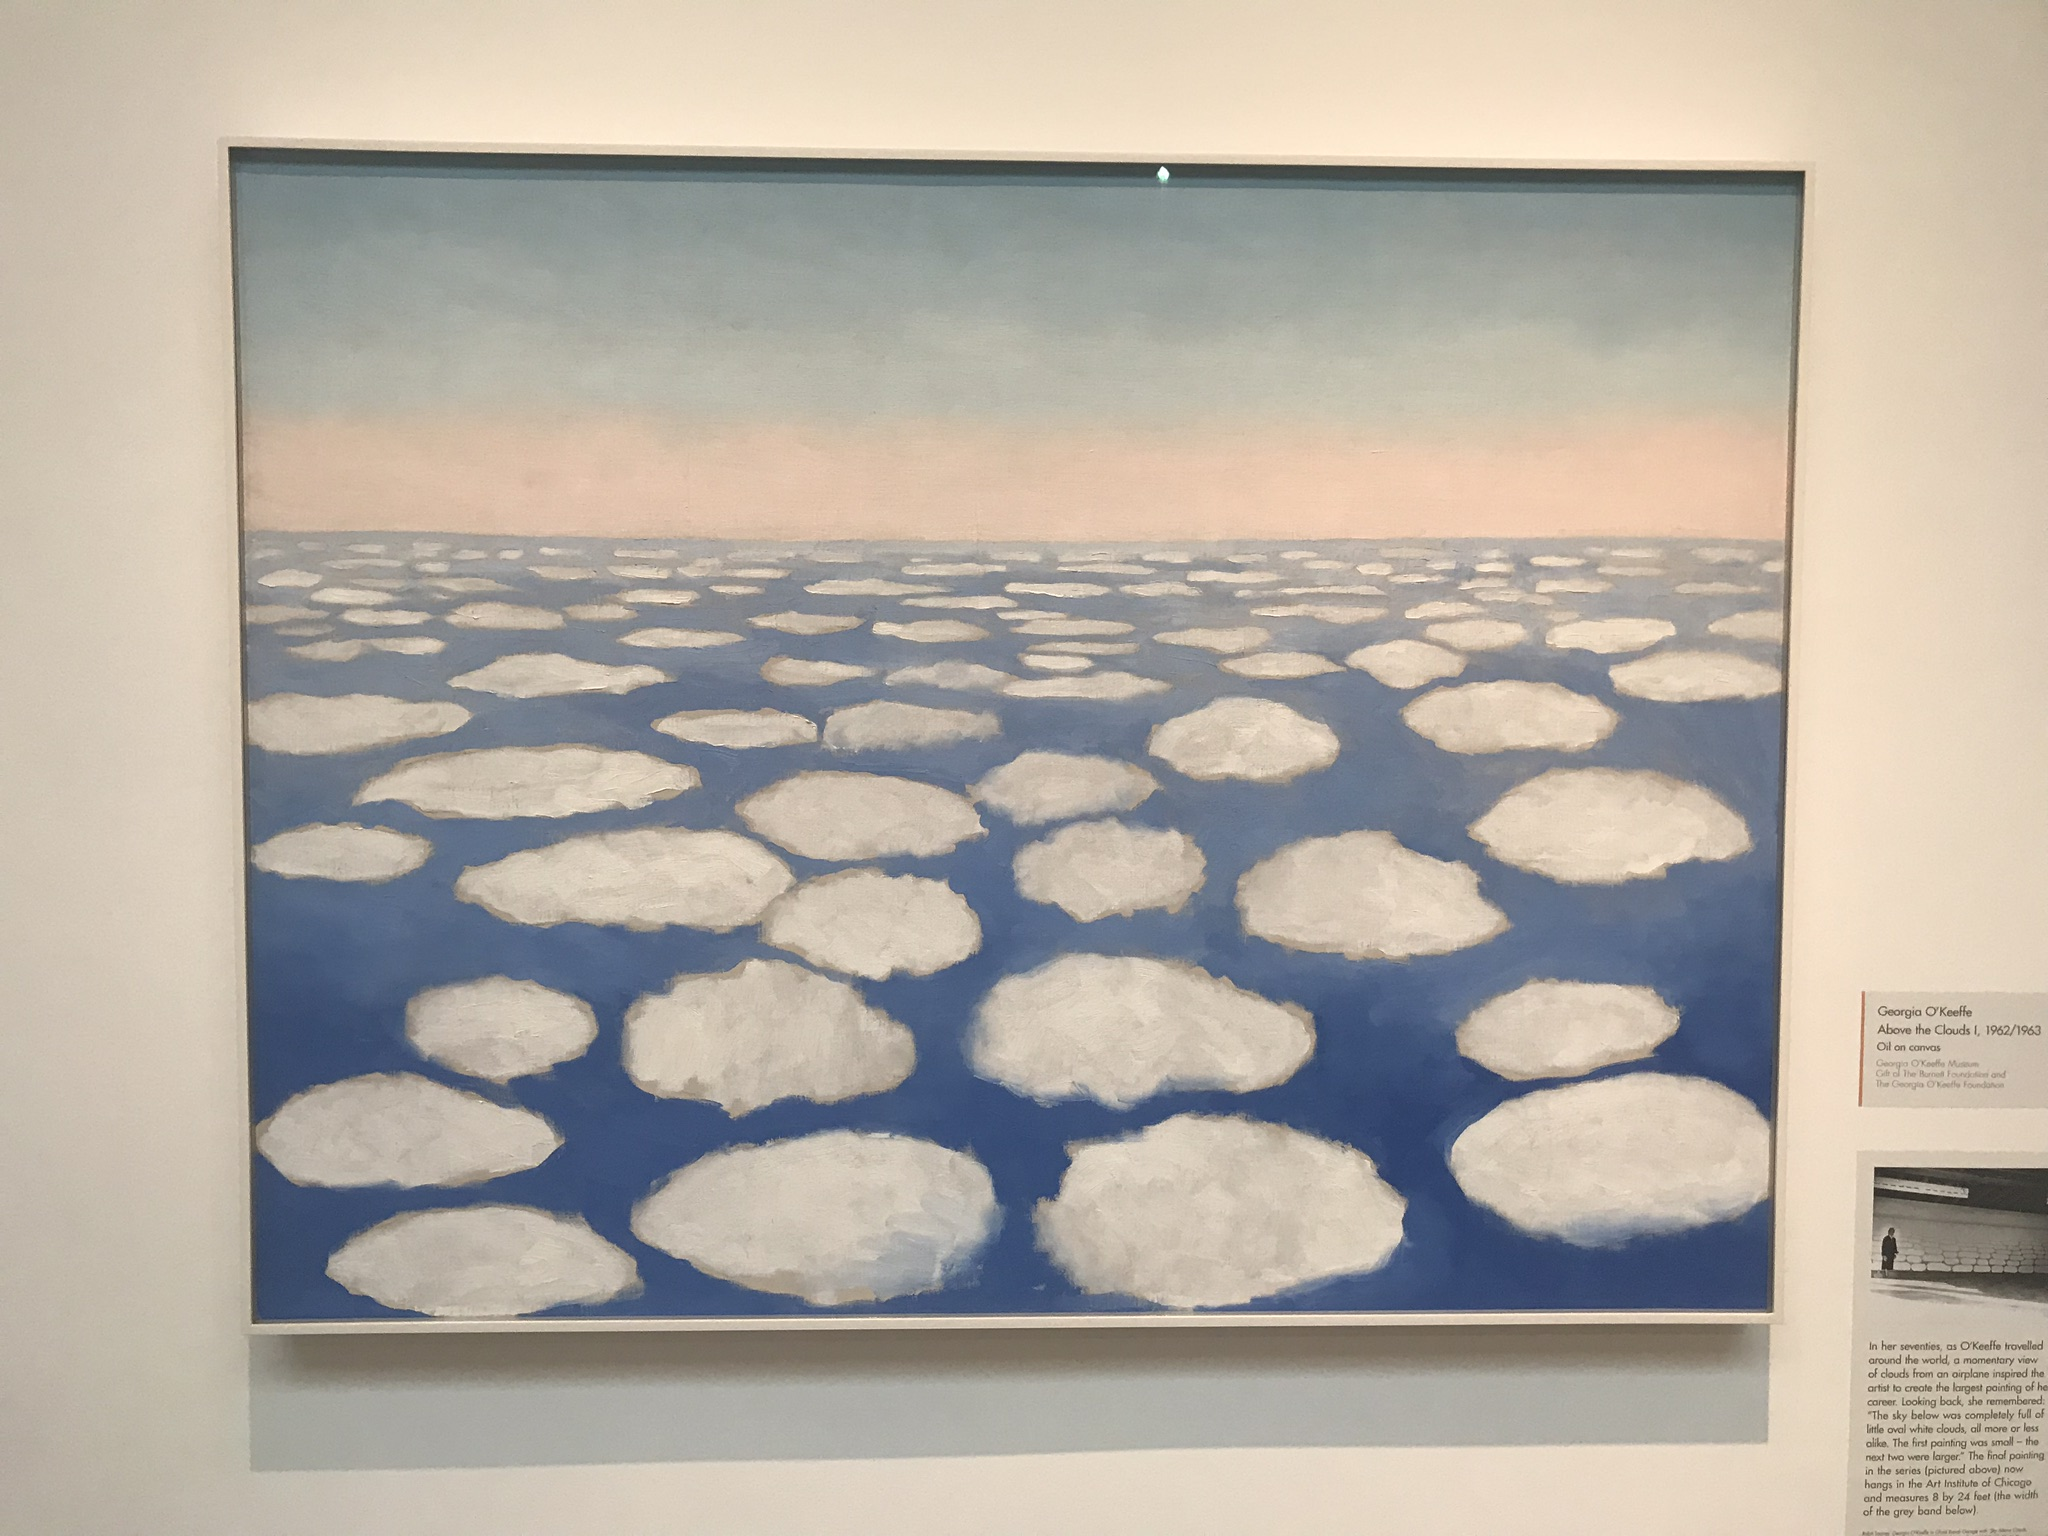 Above the Clouds 1 - Georgia O'Keeffe